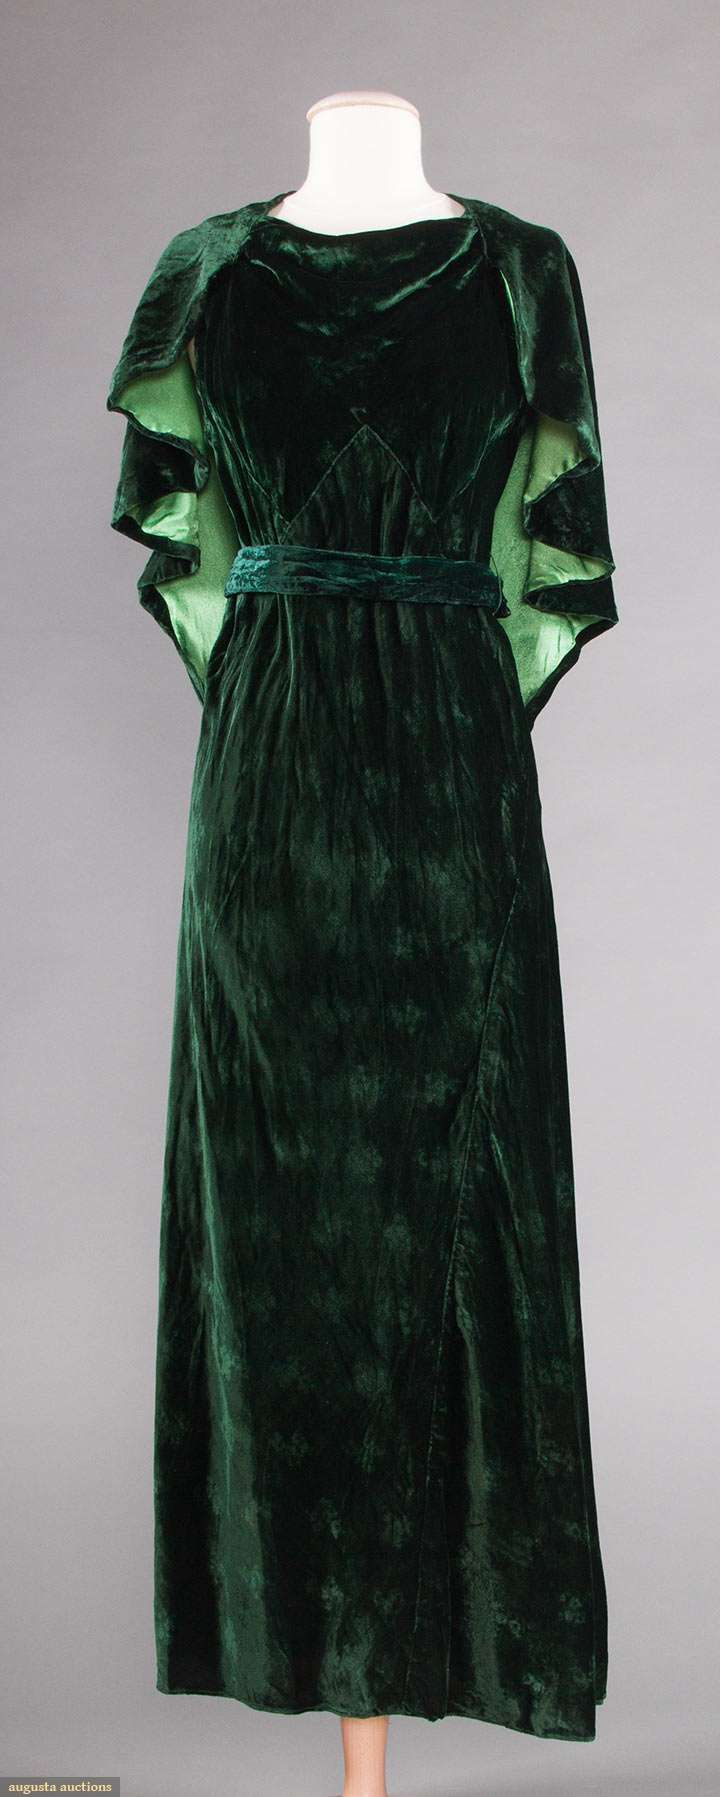 1930's forest green w/ embossed small floral pattern, sleeveless w/ attached shoulder capelet & belt